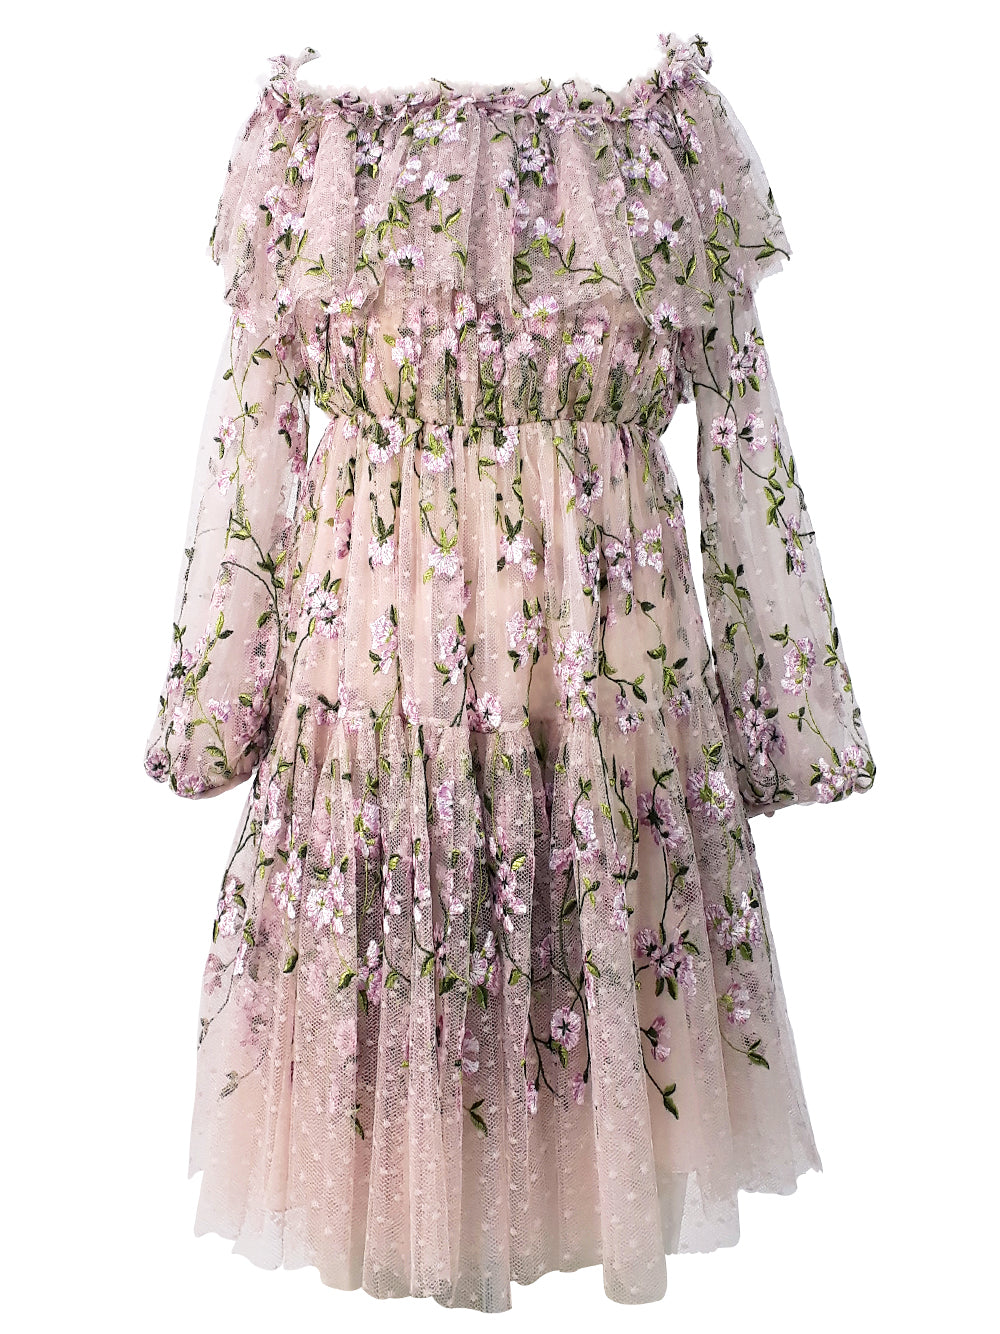 Tulle Floral Dress